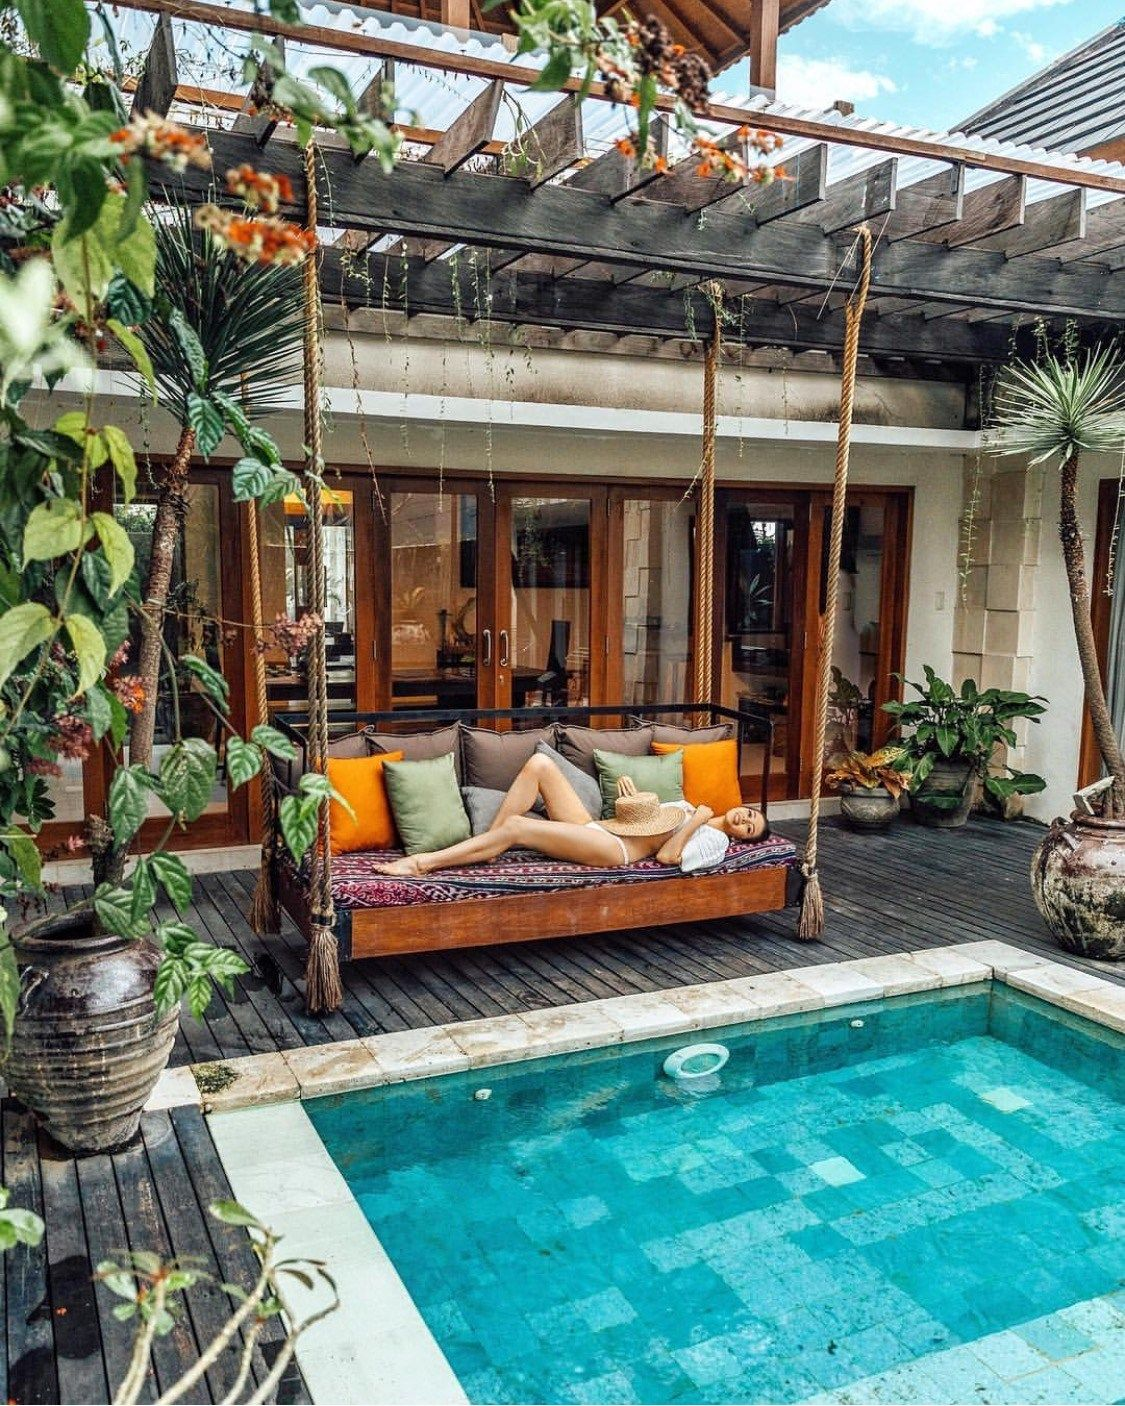 5 Surreal Swim Resorts in Bali to Soak Up the Sun | Décoration and ...